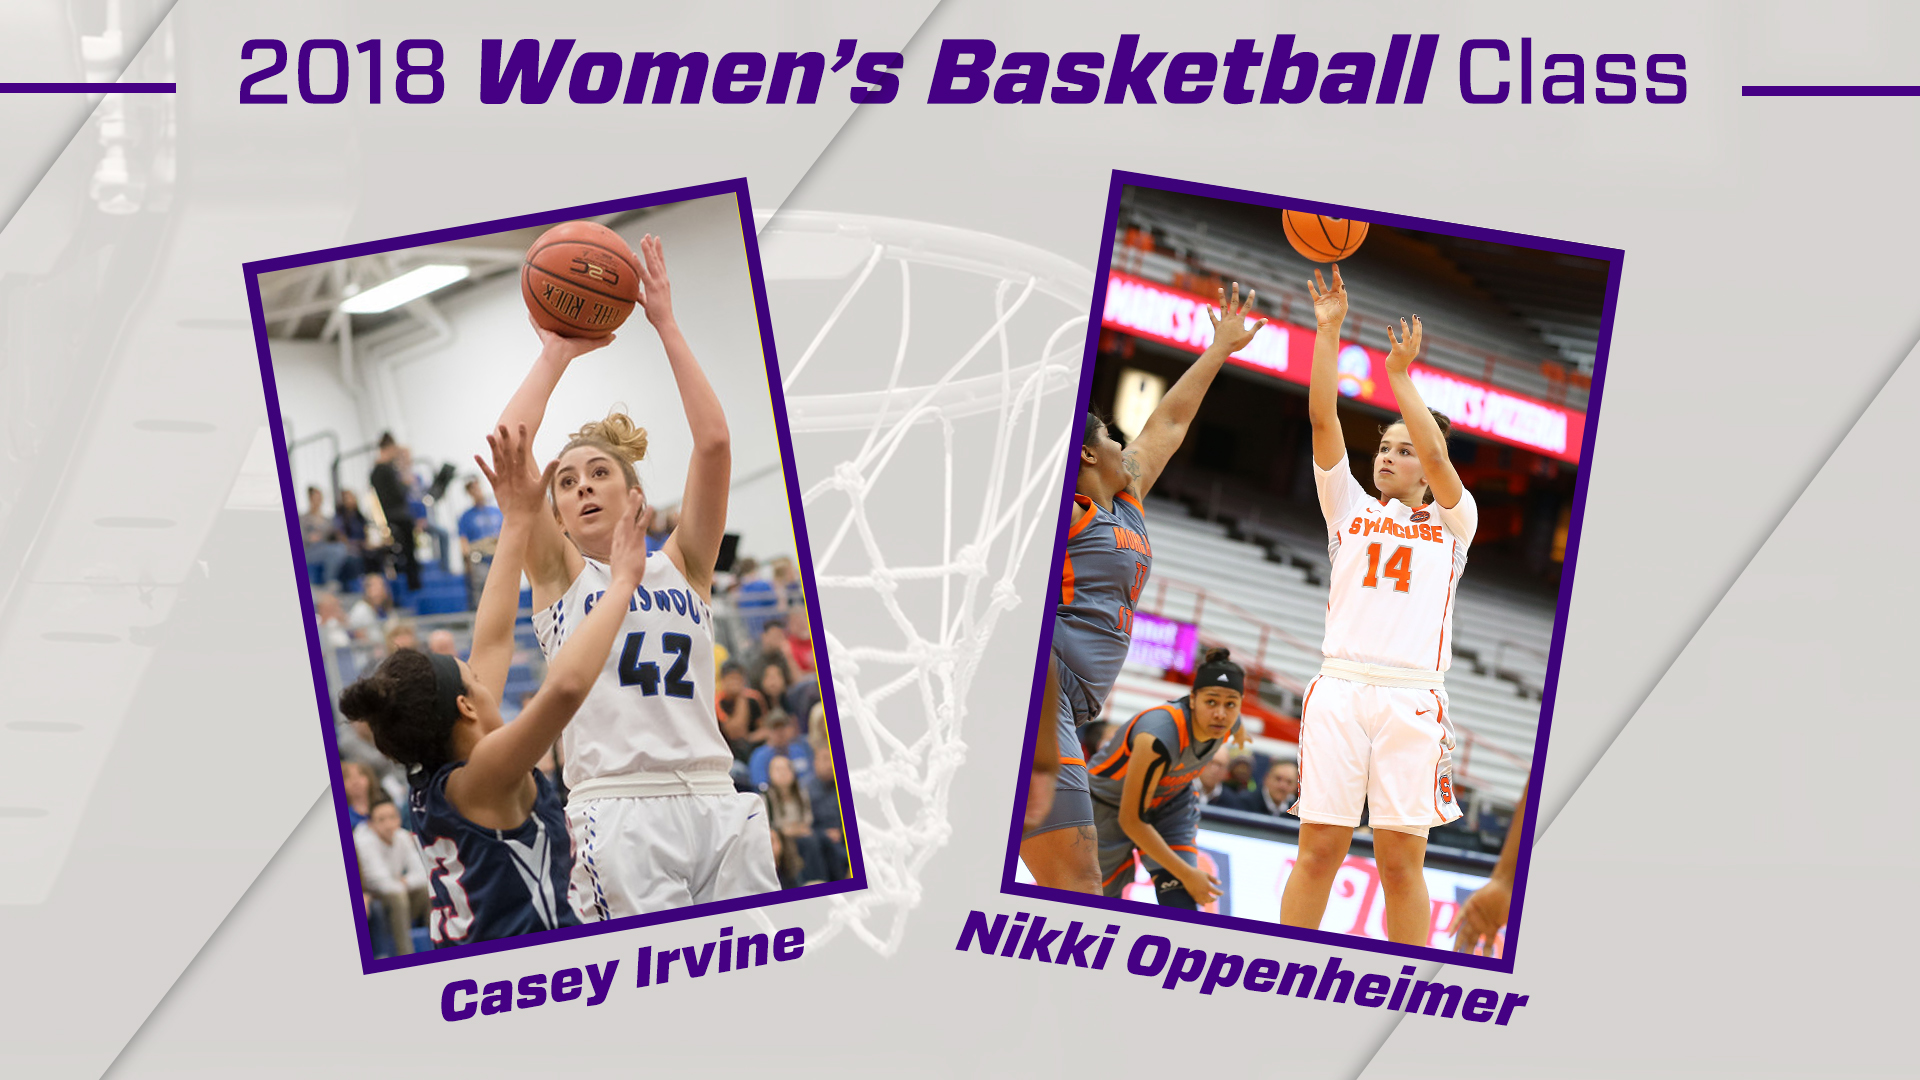 Women's Basketball: Women's Basketball Adds Irvine & Oppenheimer